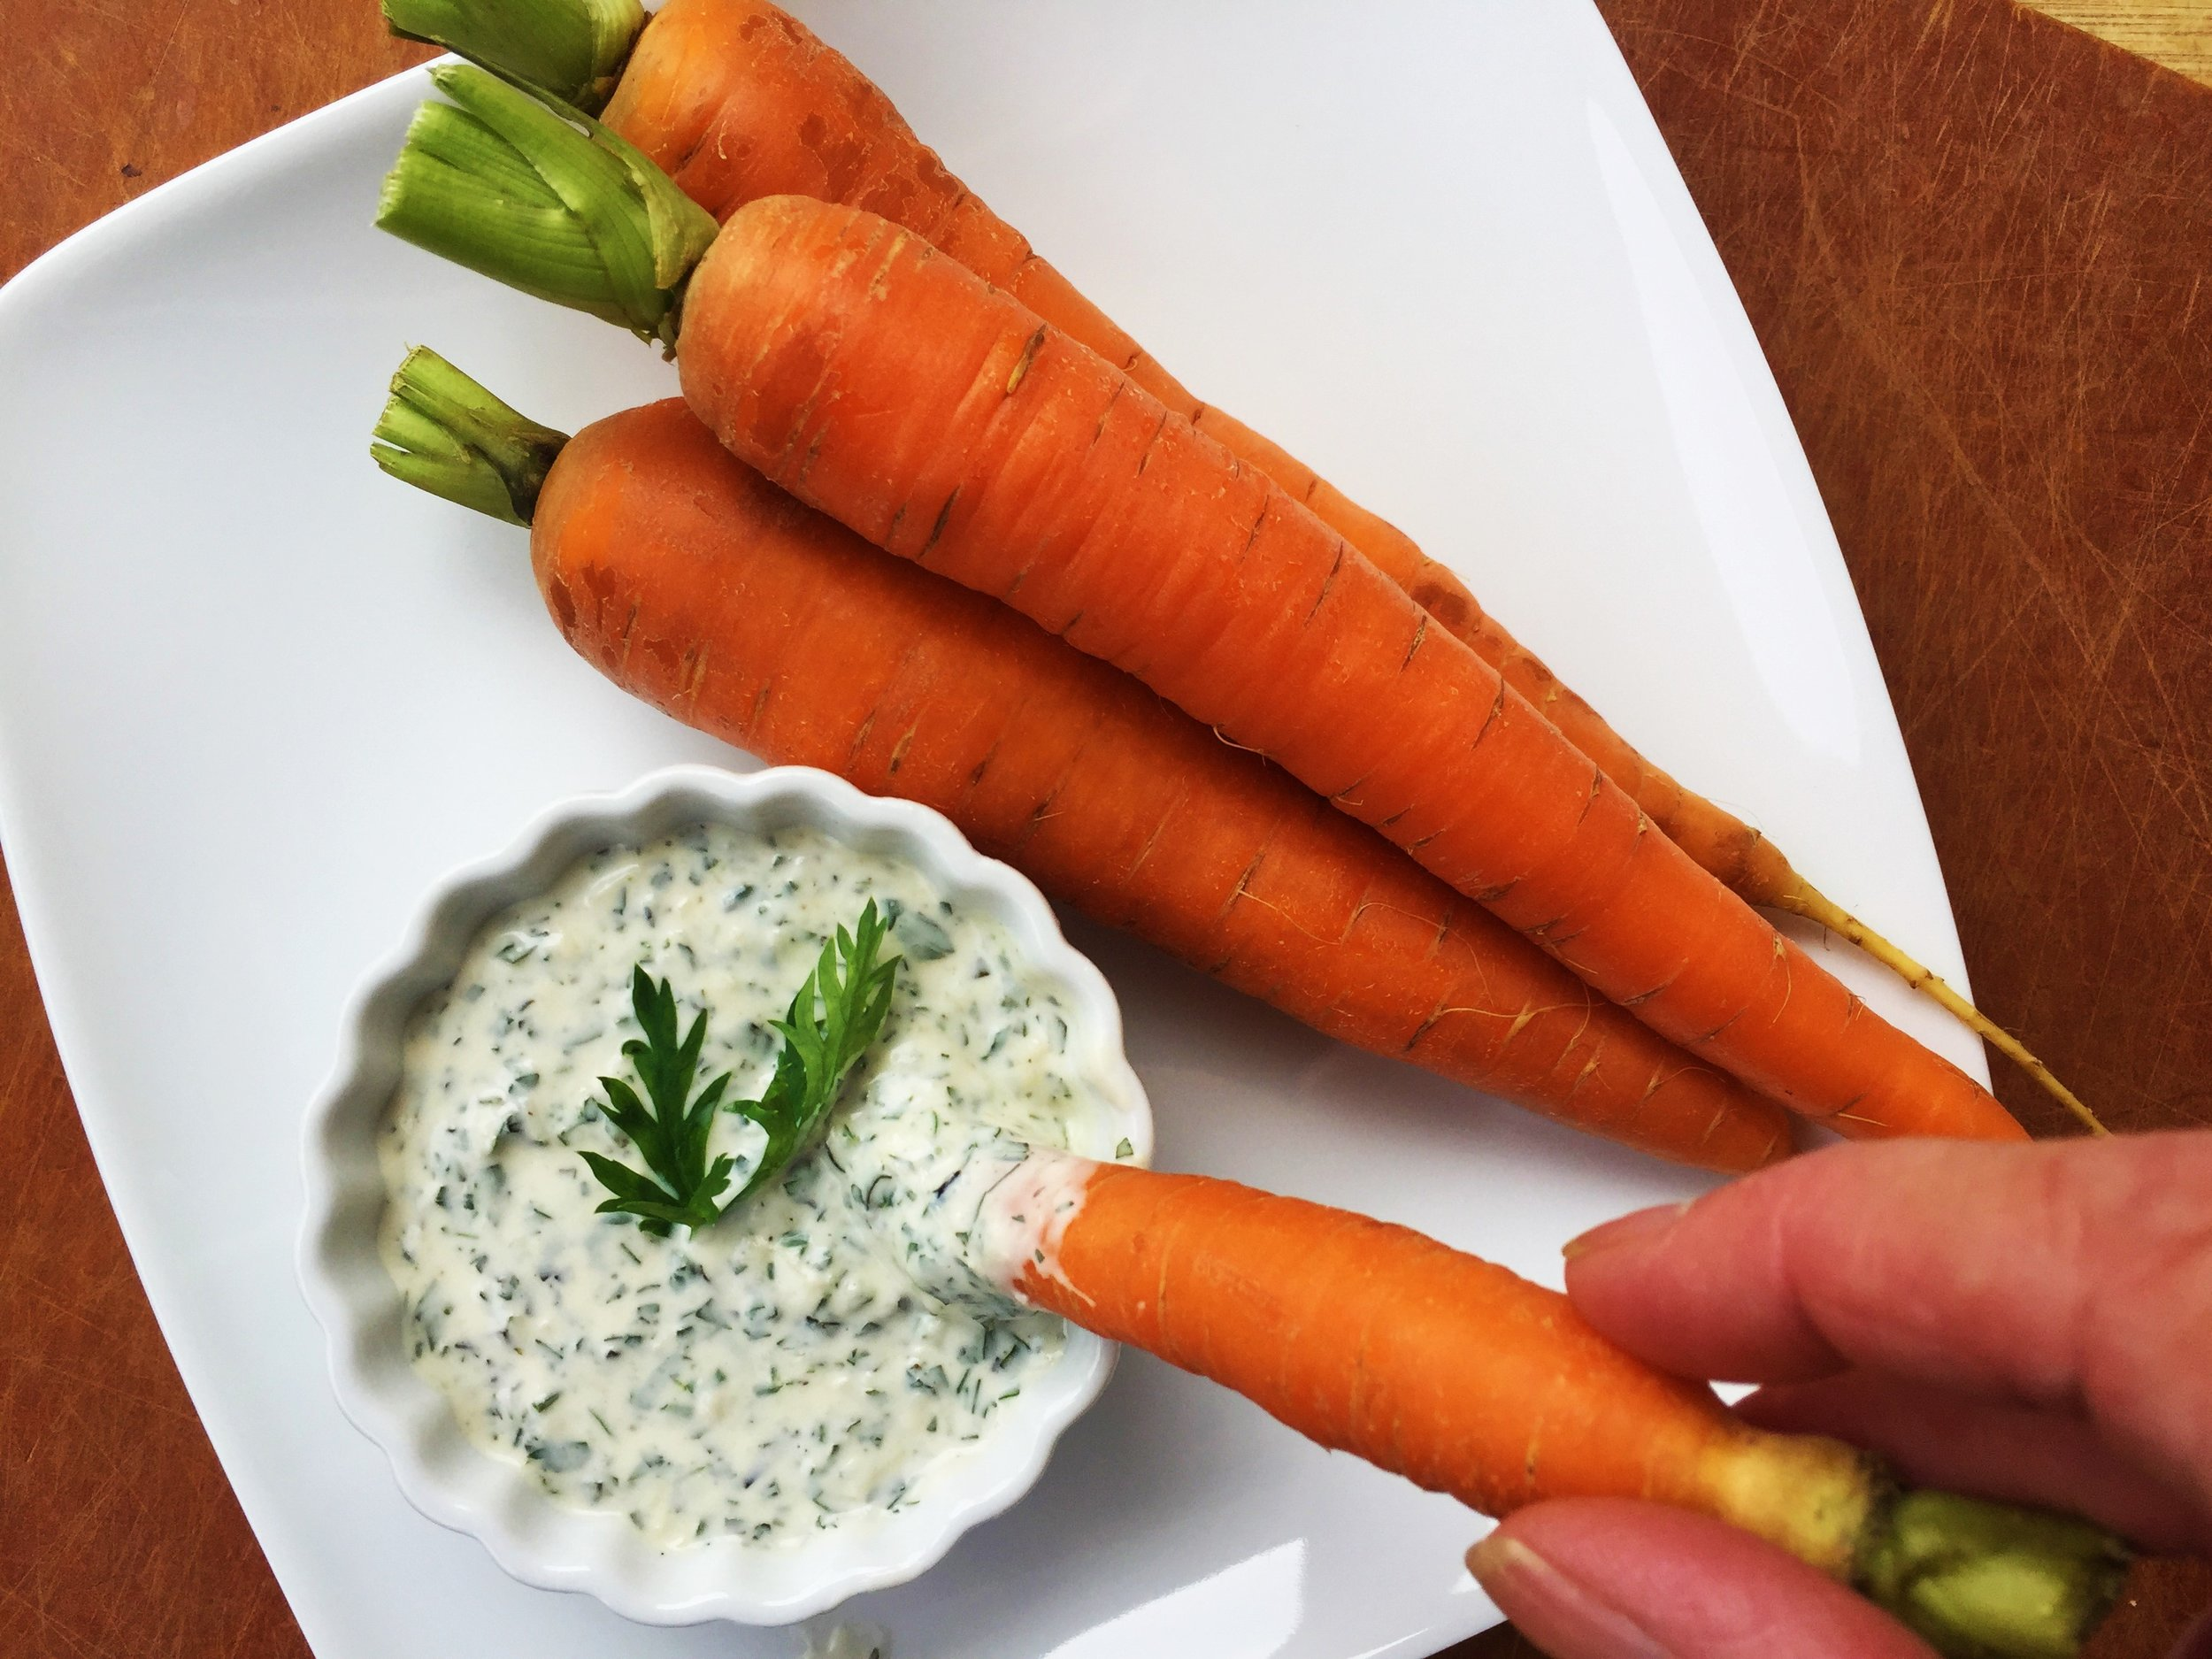 Carrot-Top Parmesan Ranch Dip made in the Adventure Kitchen.